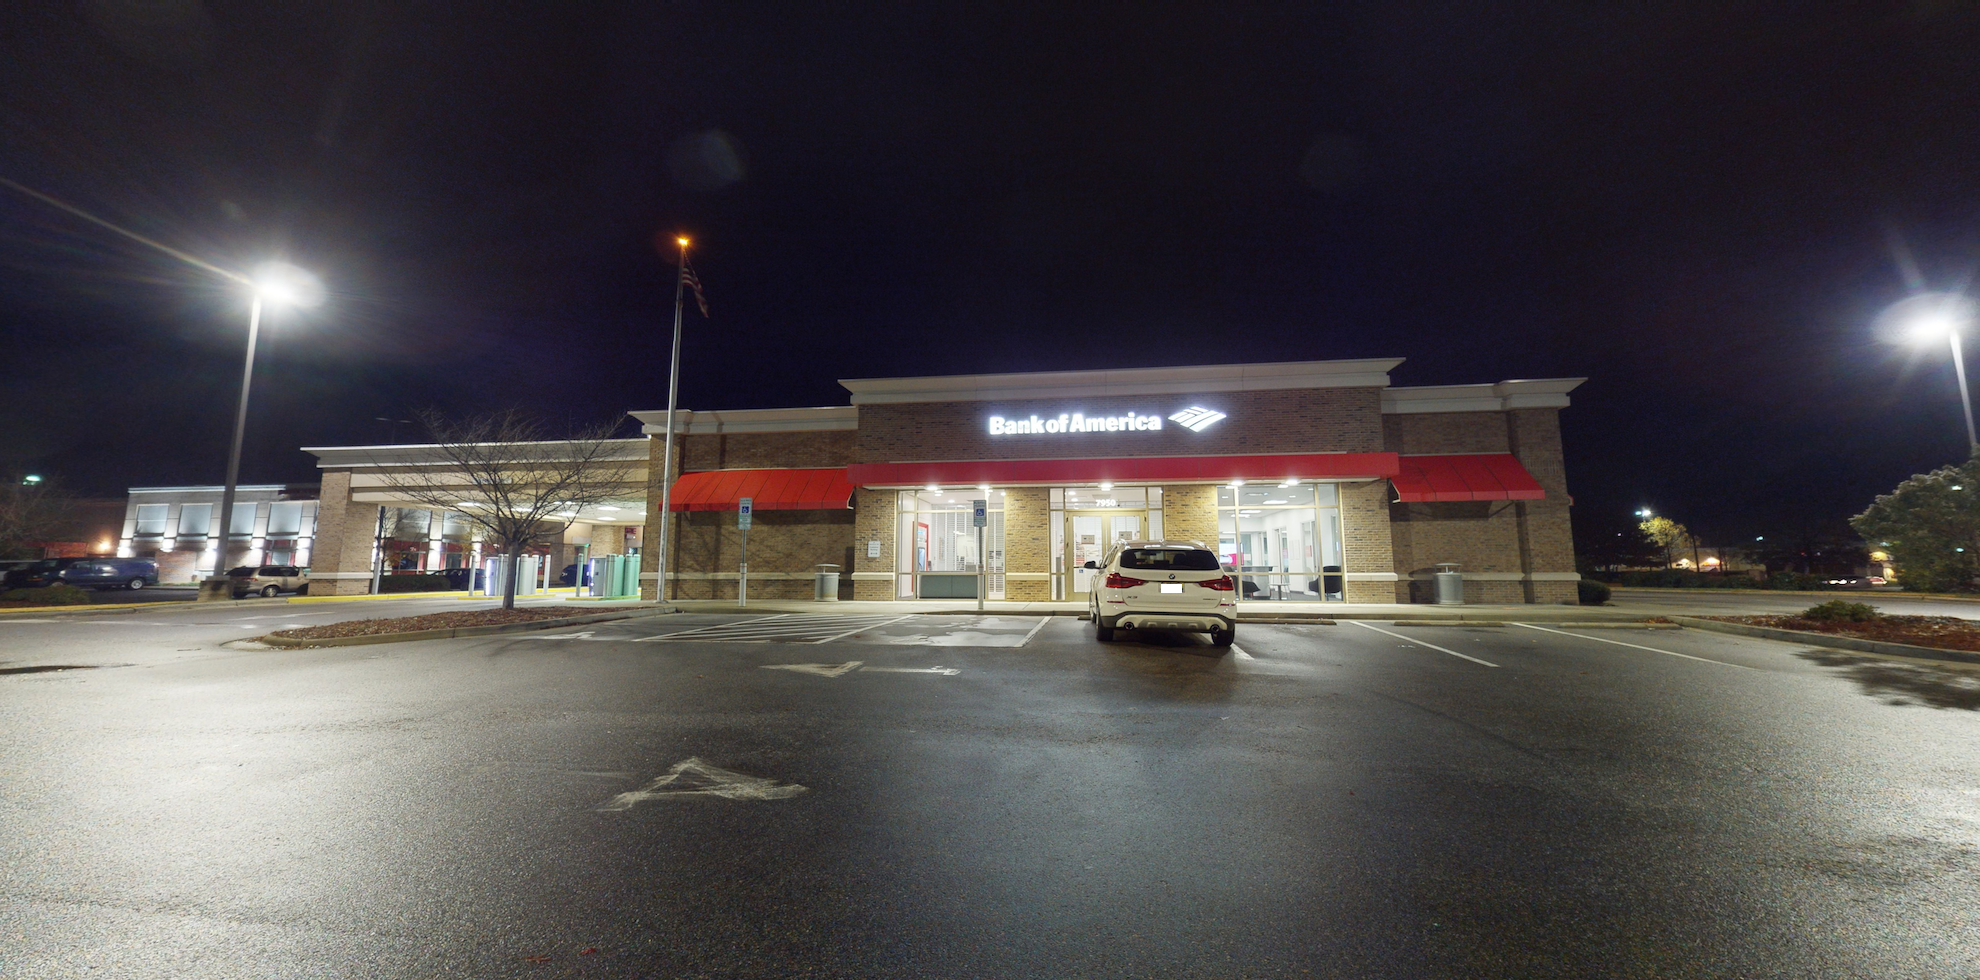 Bank of America financial center with drive-thru ATM   7950 Brier Creek Pkwy, Raleigh, NC 27617